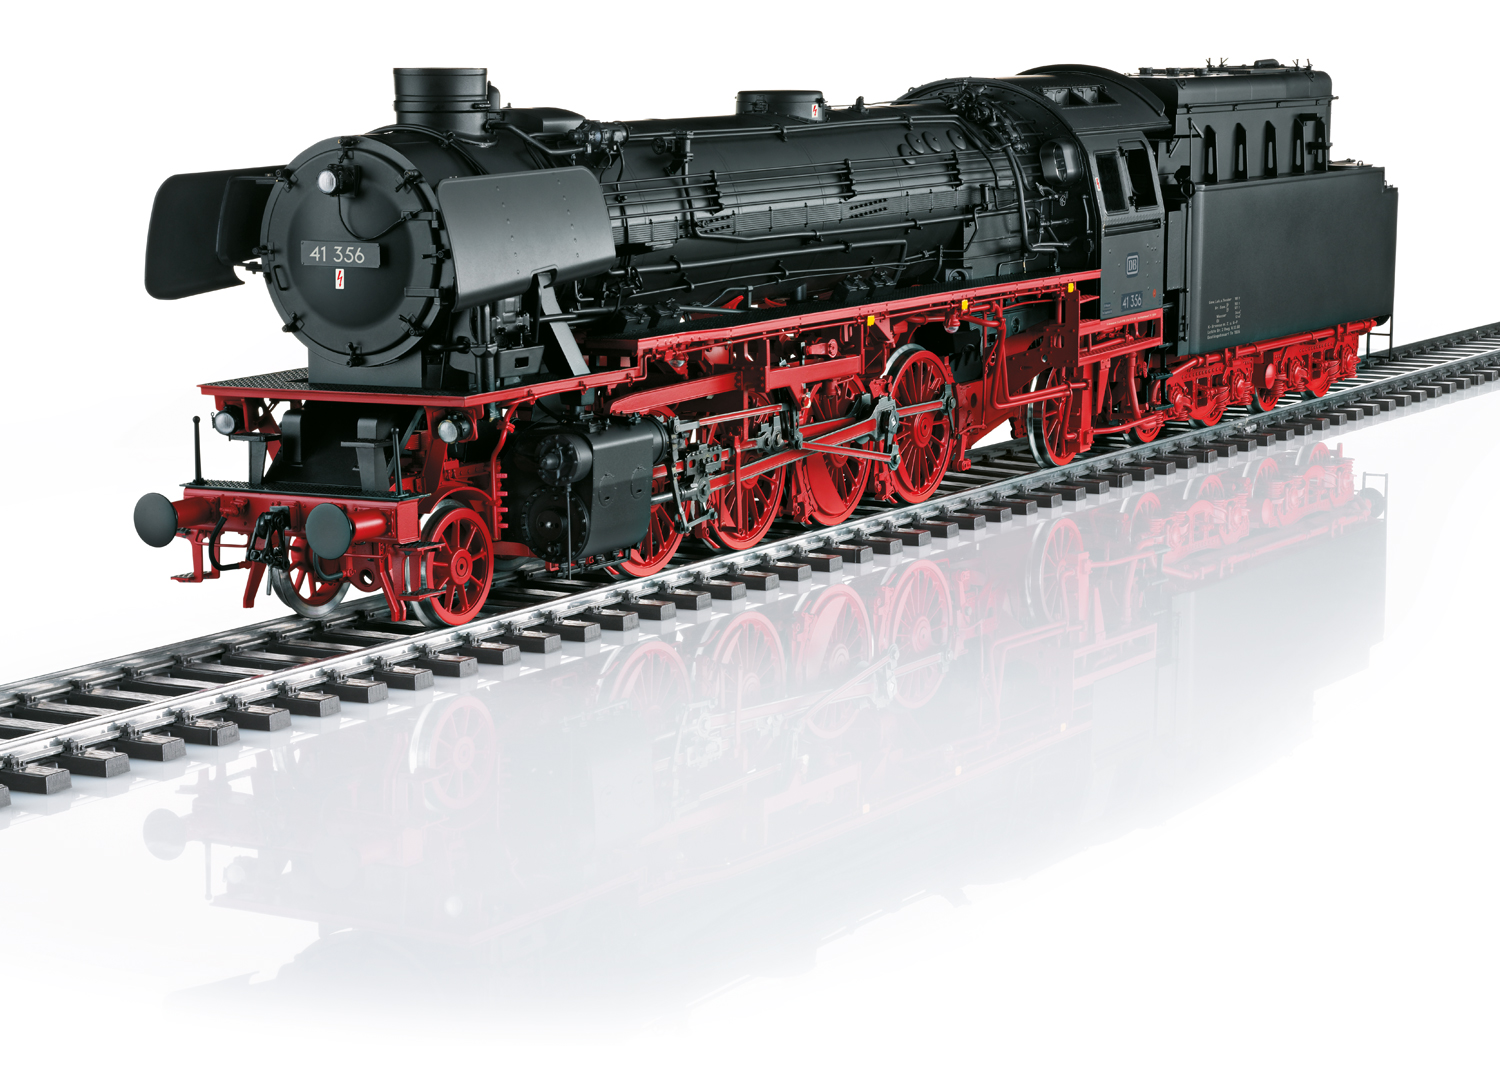 Steam Locomotive with a Tender